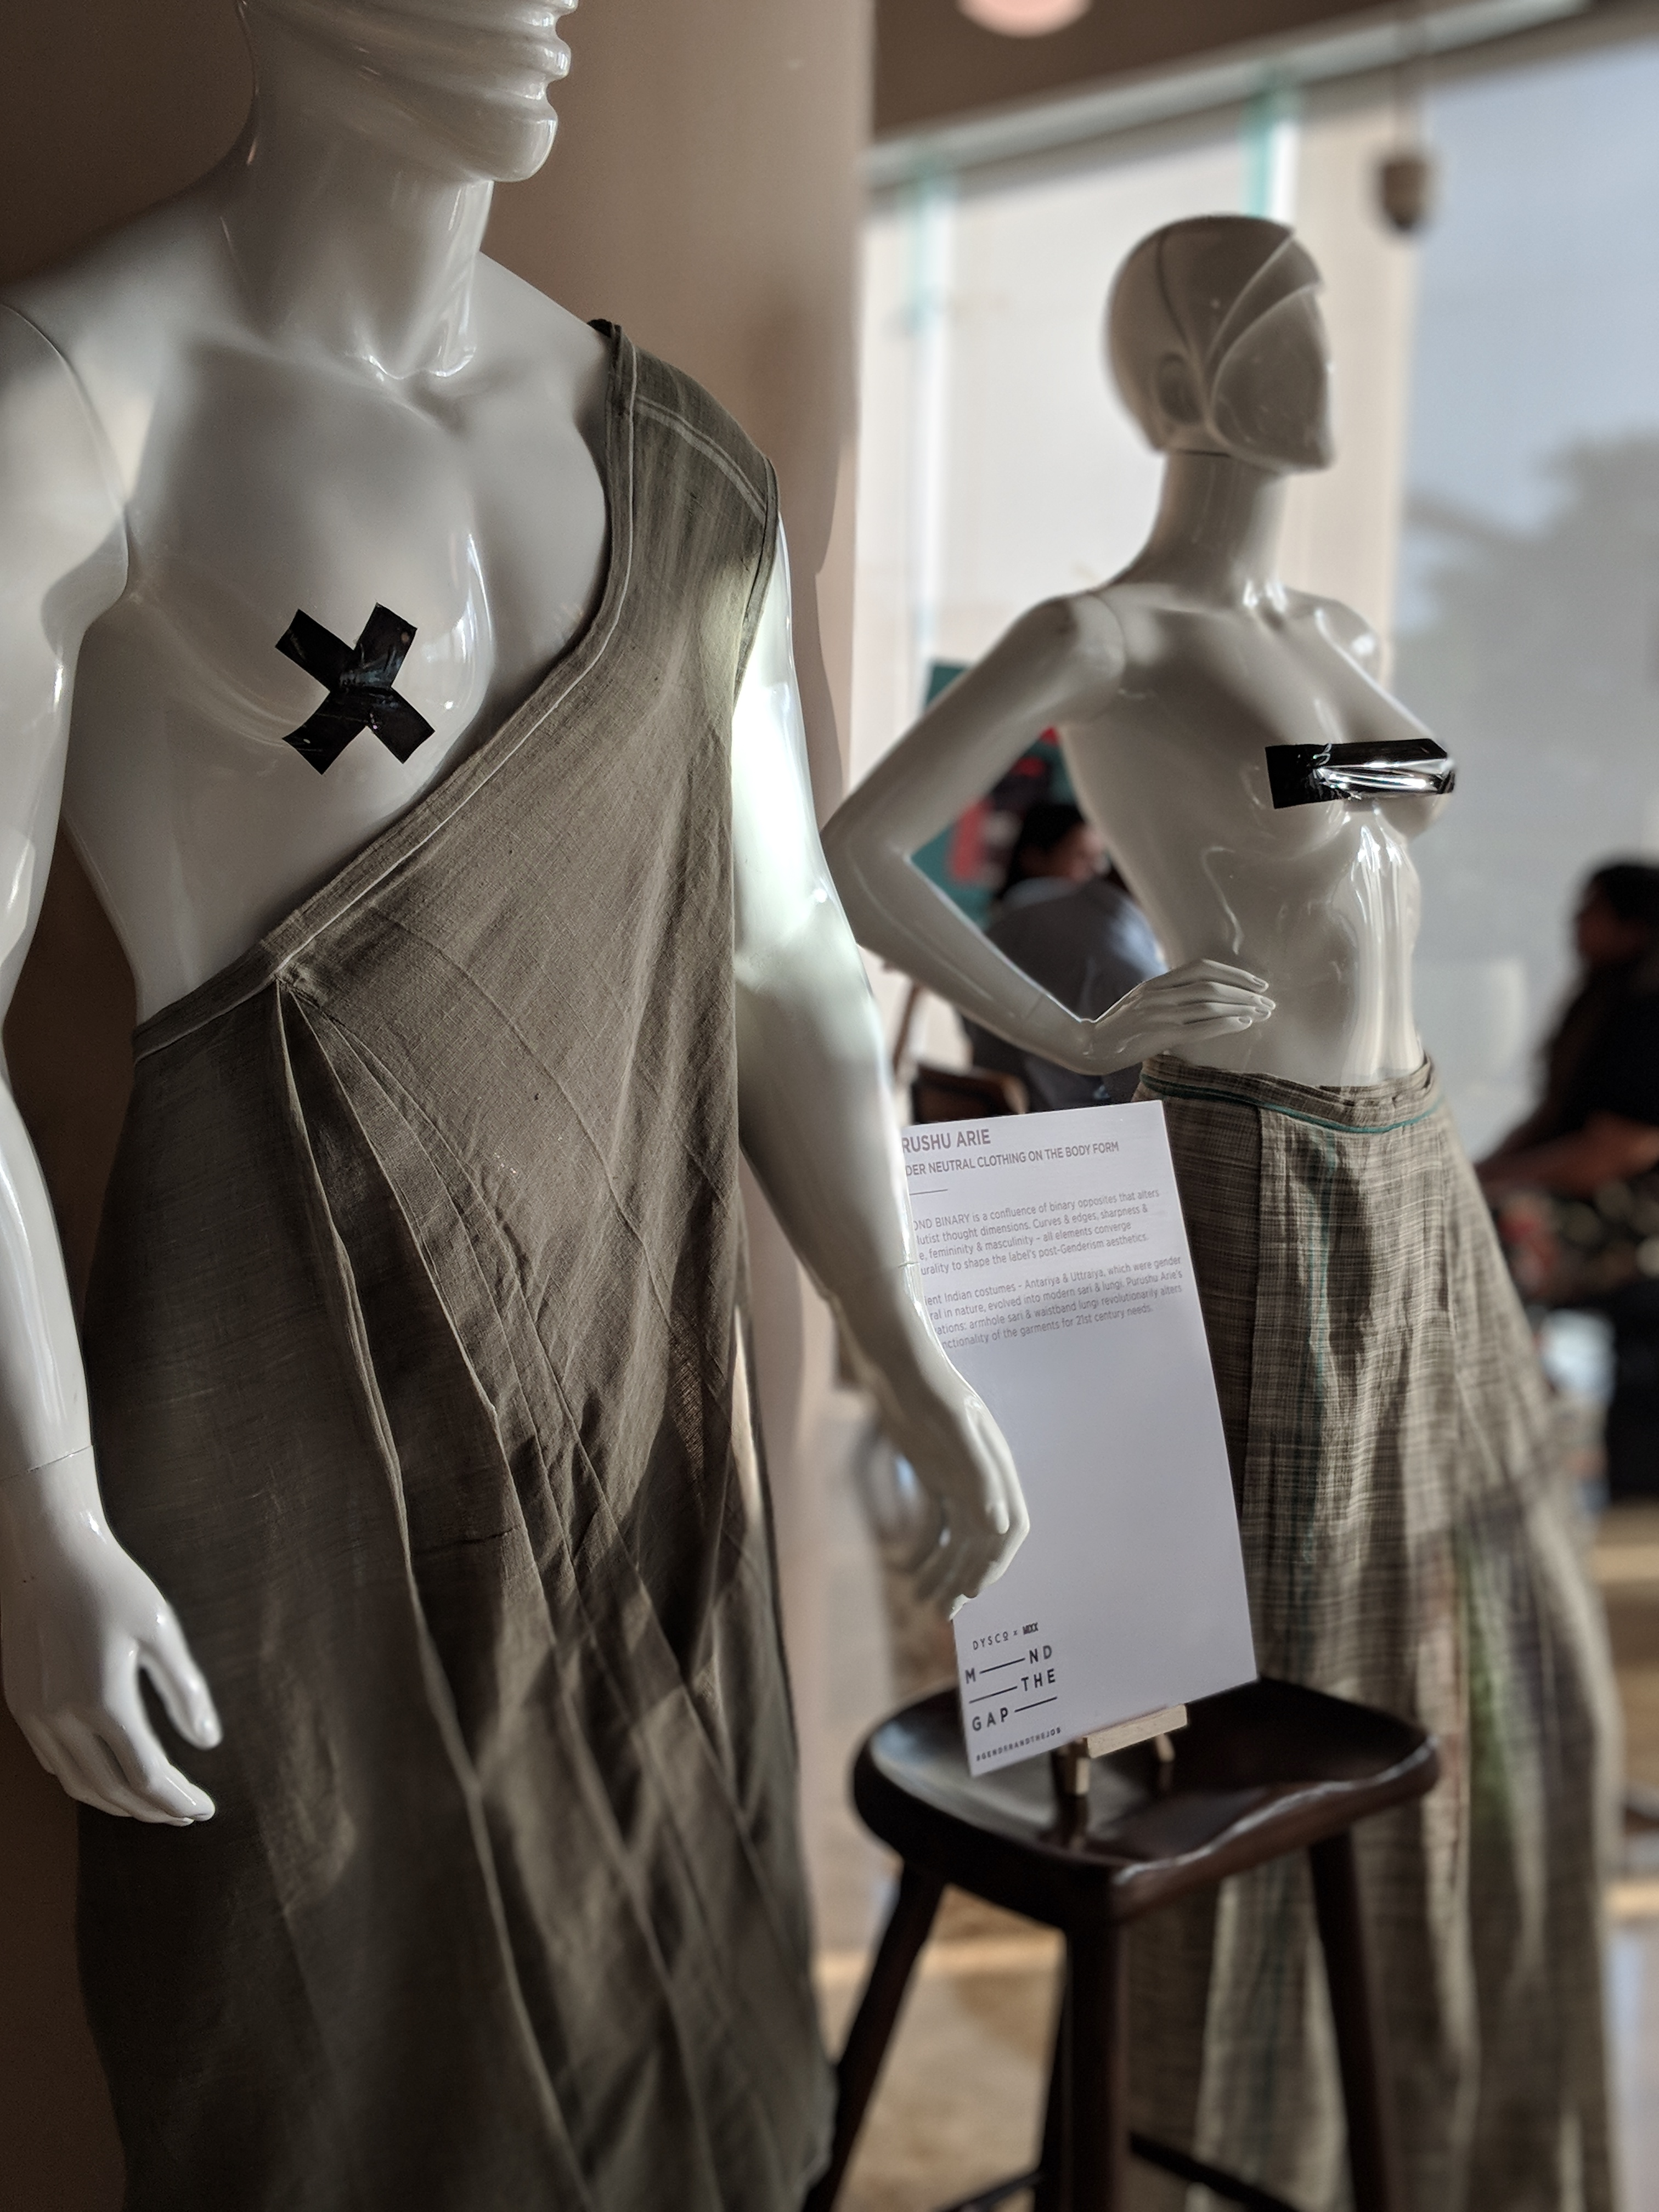 Purushu Arie - Gender Neutral Clothing On Body Form 1